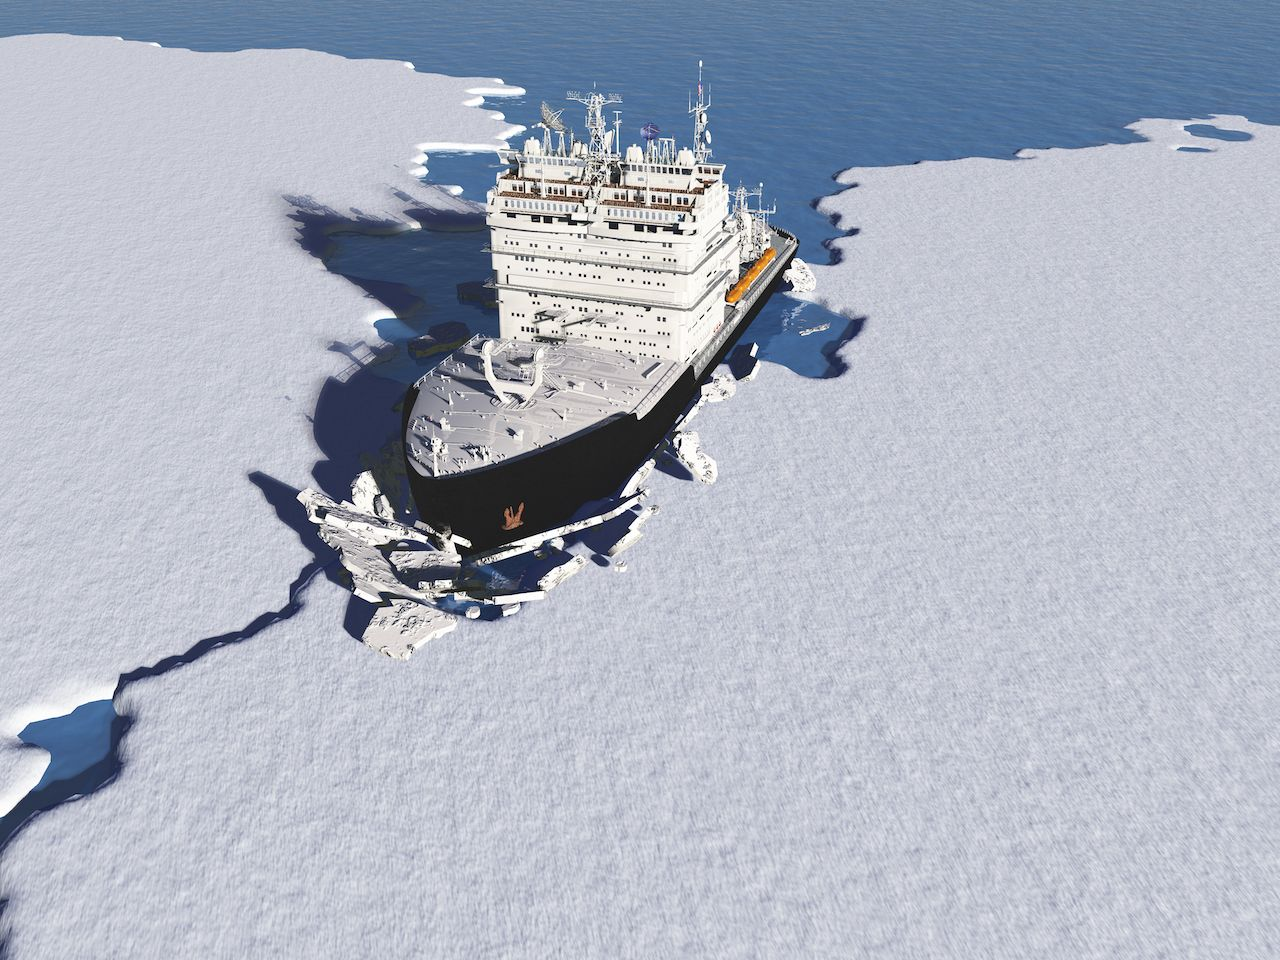 Icebreaker ship on the ice in the sea